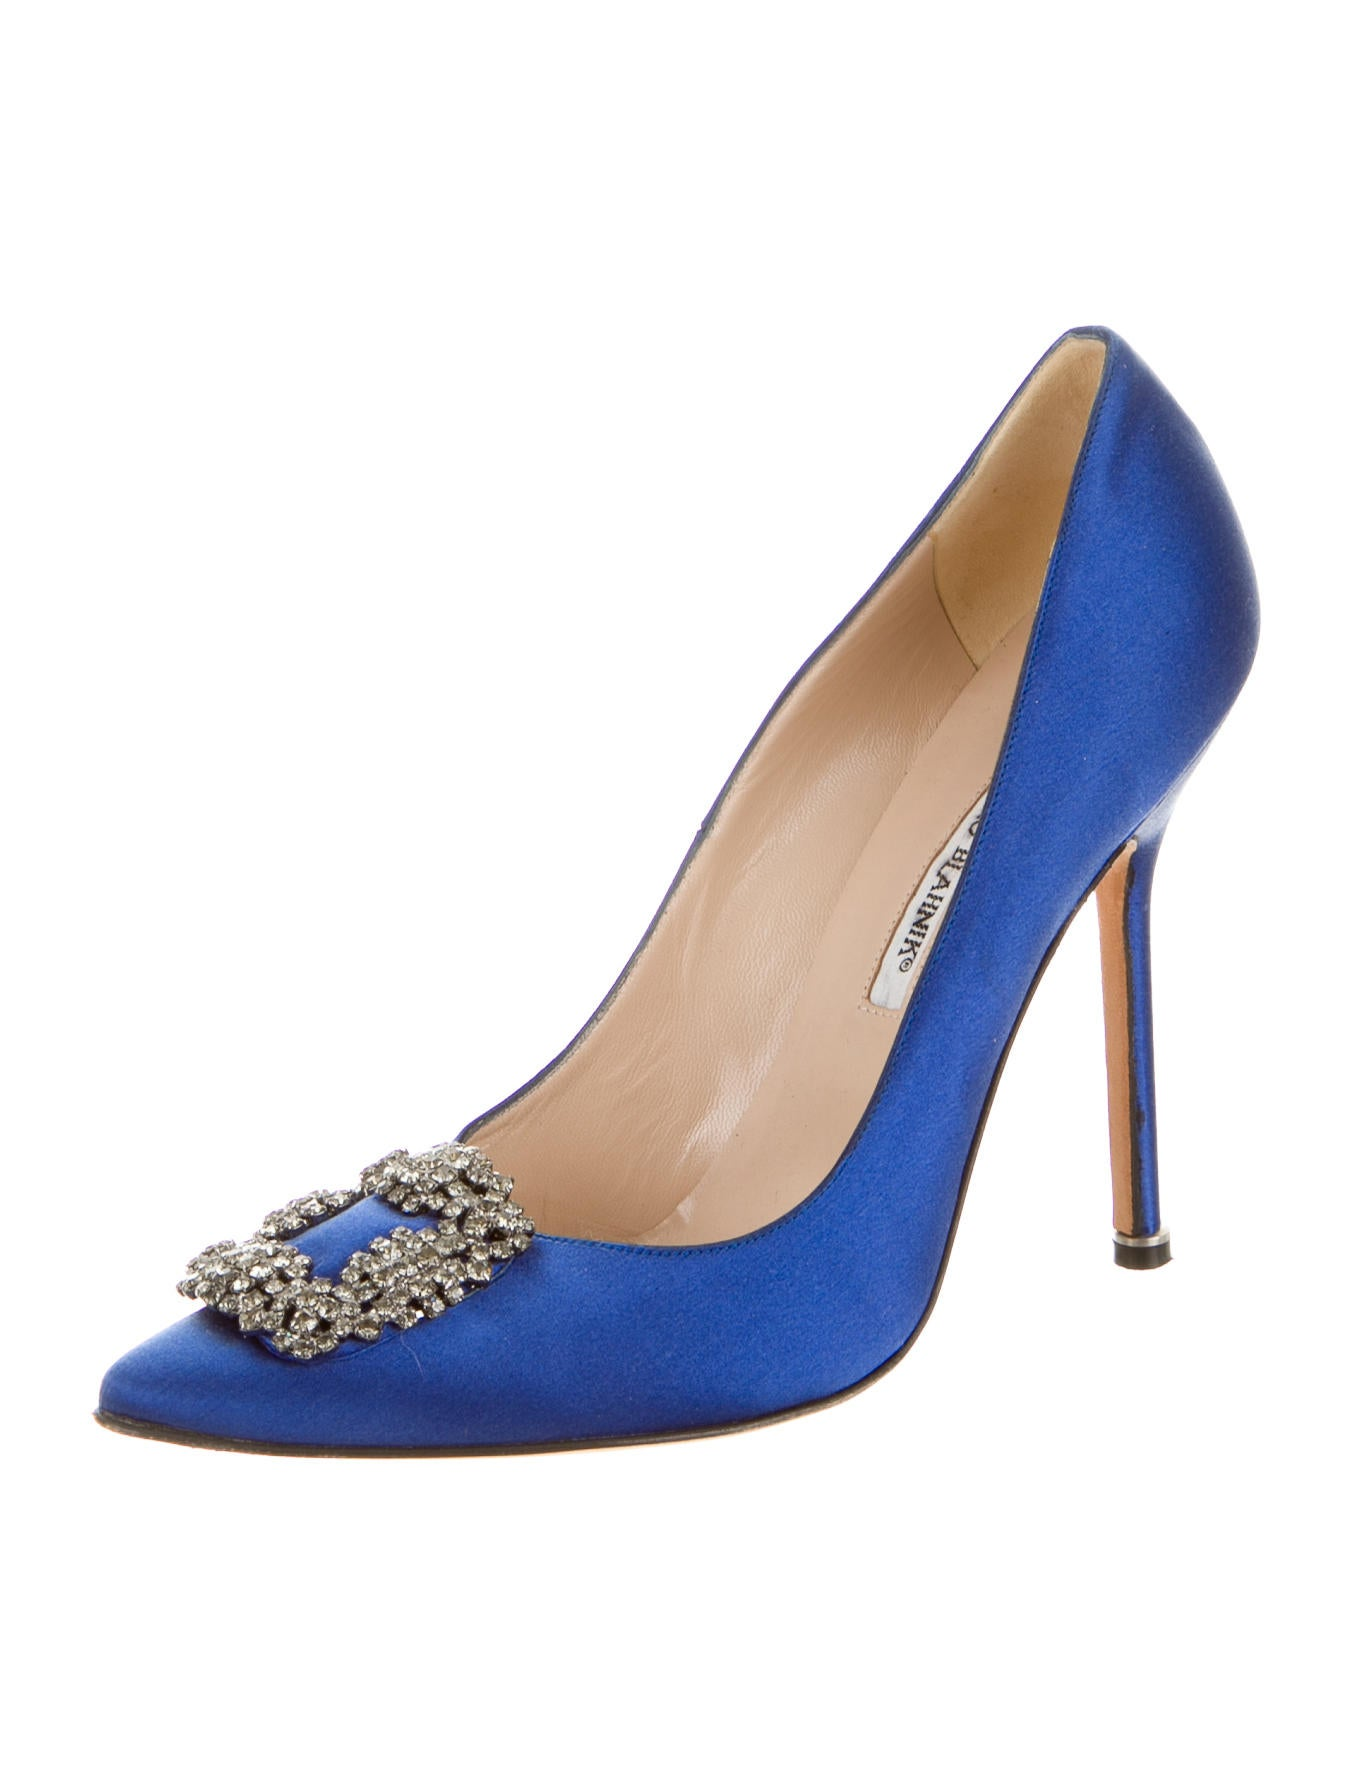 Manolo blahnik satin hangisi pumps shoes moo43805 for Shoes by manolo blahnik